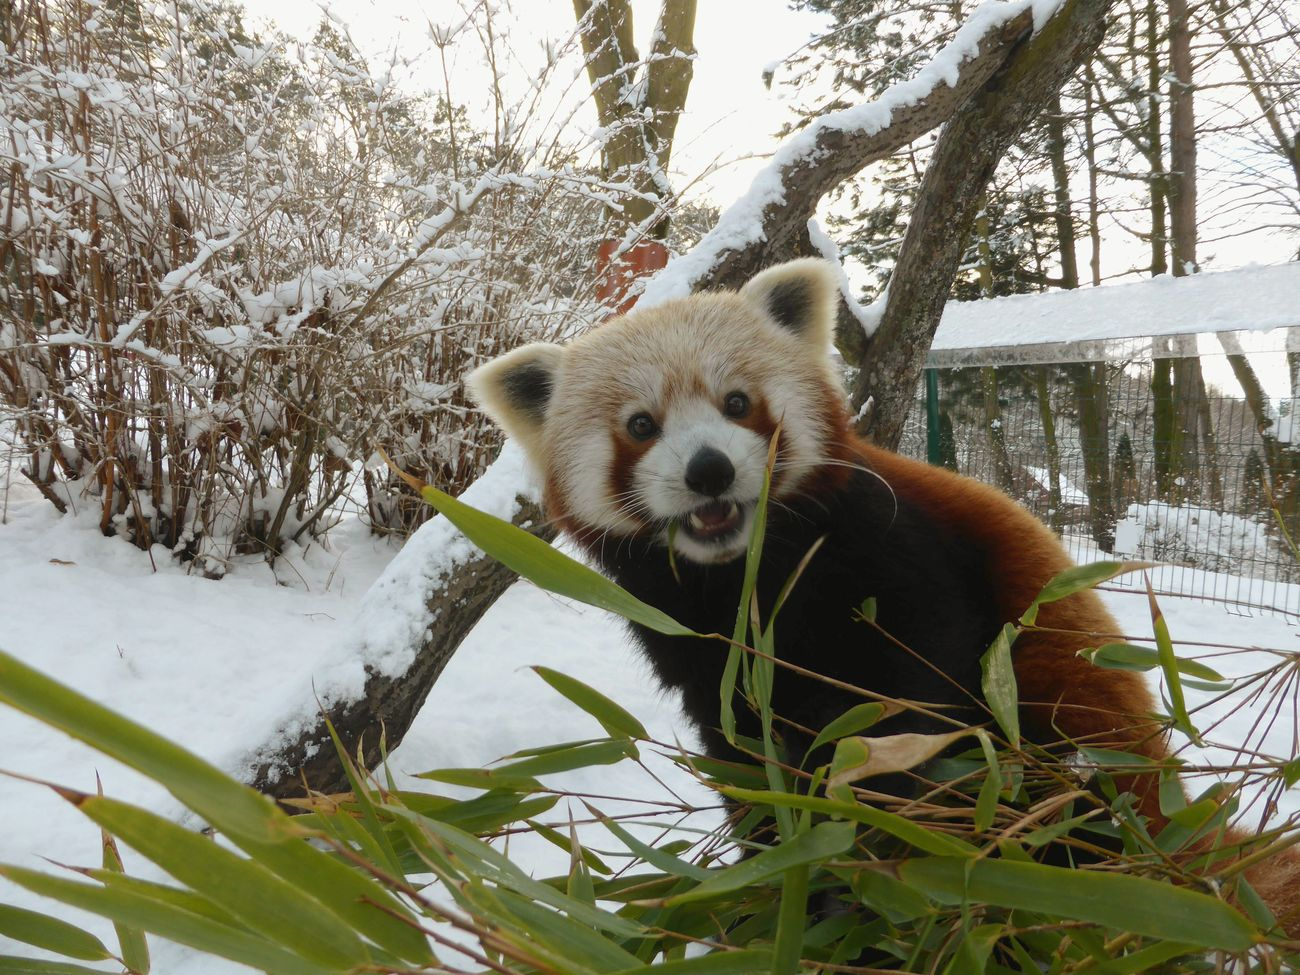 Animals One Animal Animal Photography Animal Portrait No People Zoophotography Zoo Animals  Looking At Camera Snow Bamboo Bamboo Leaves Panda Red Panda